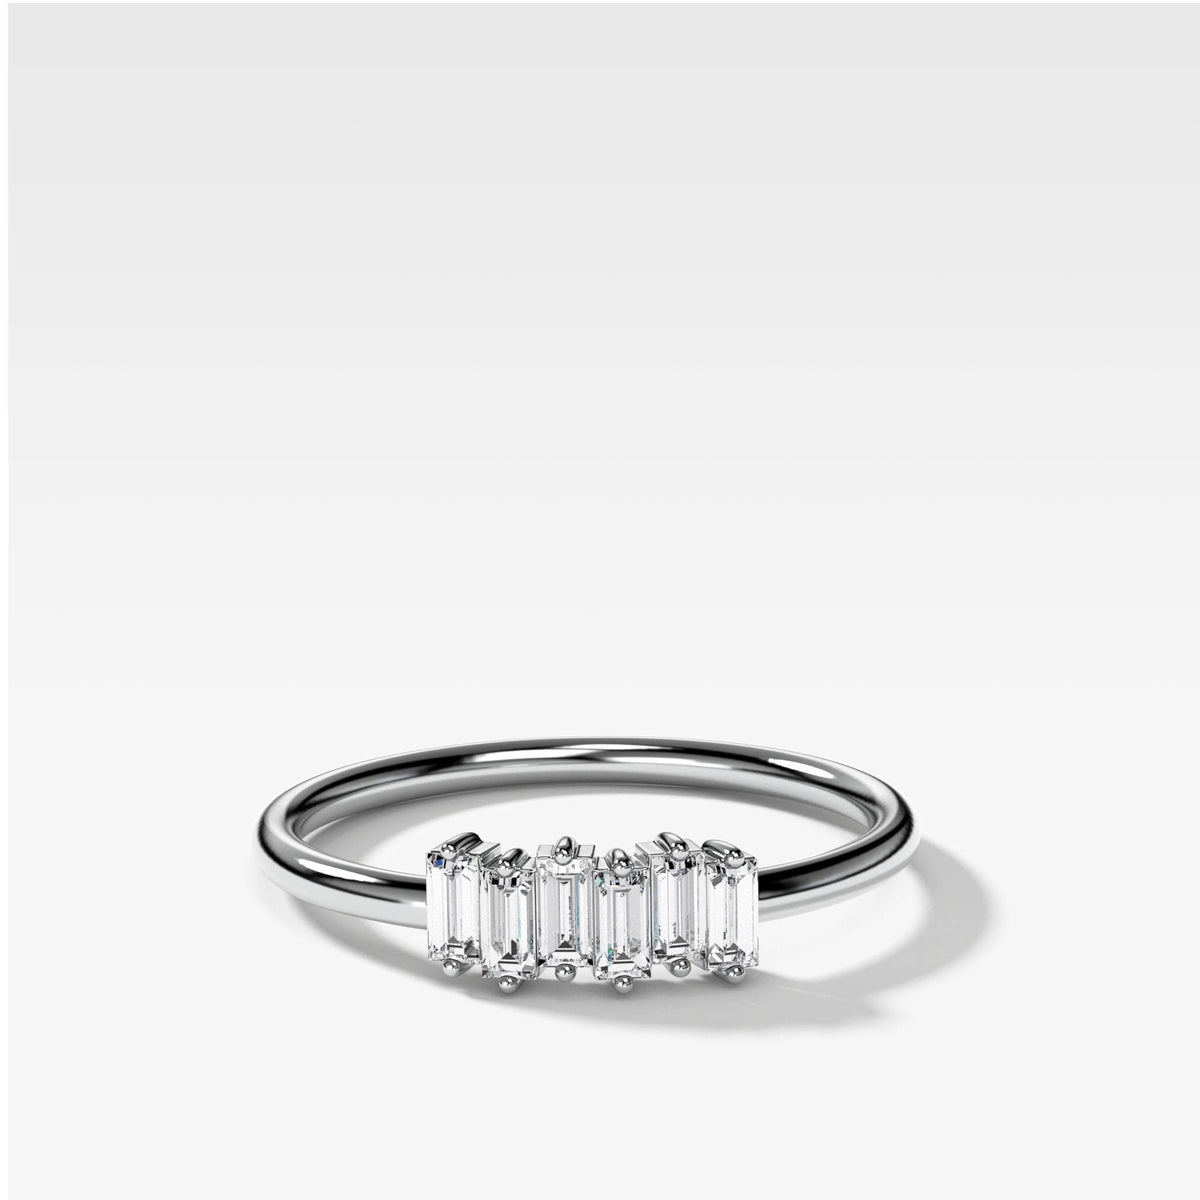 Petite Baguette Stacker Band available in White Gold by Good Stone